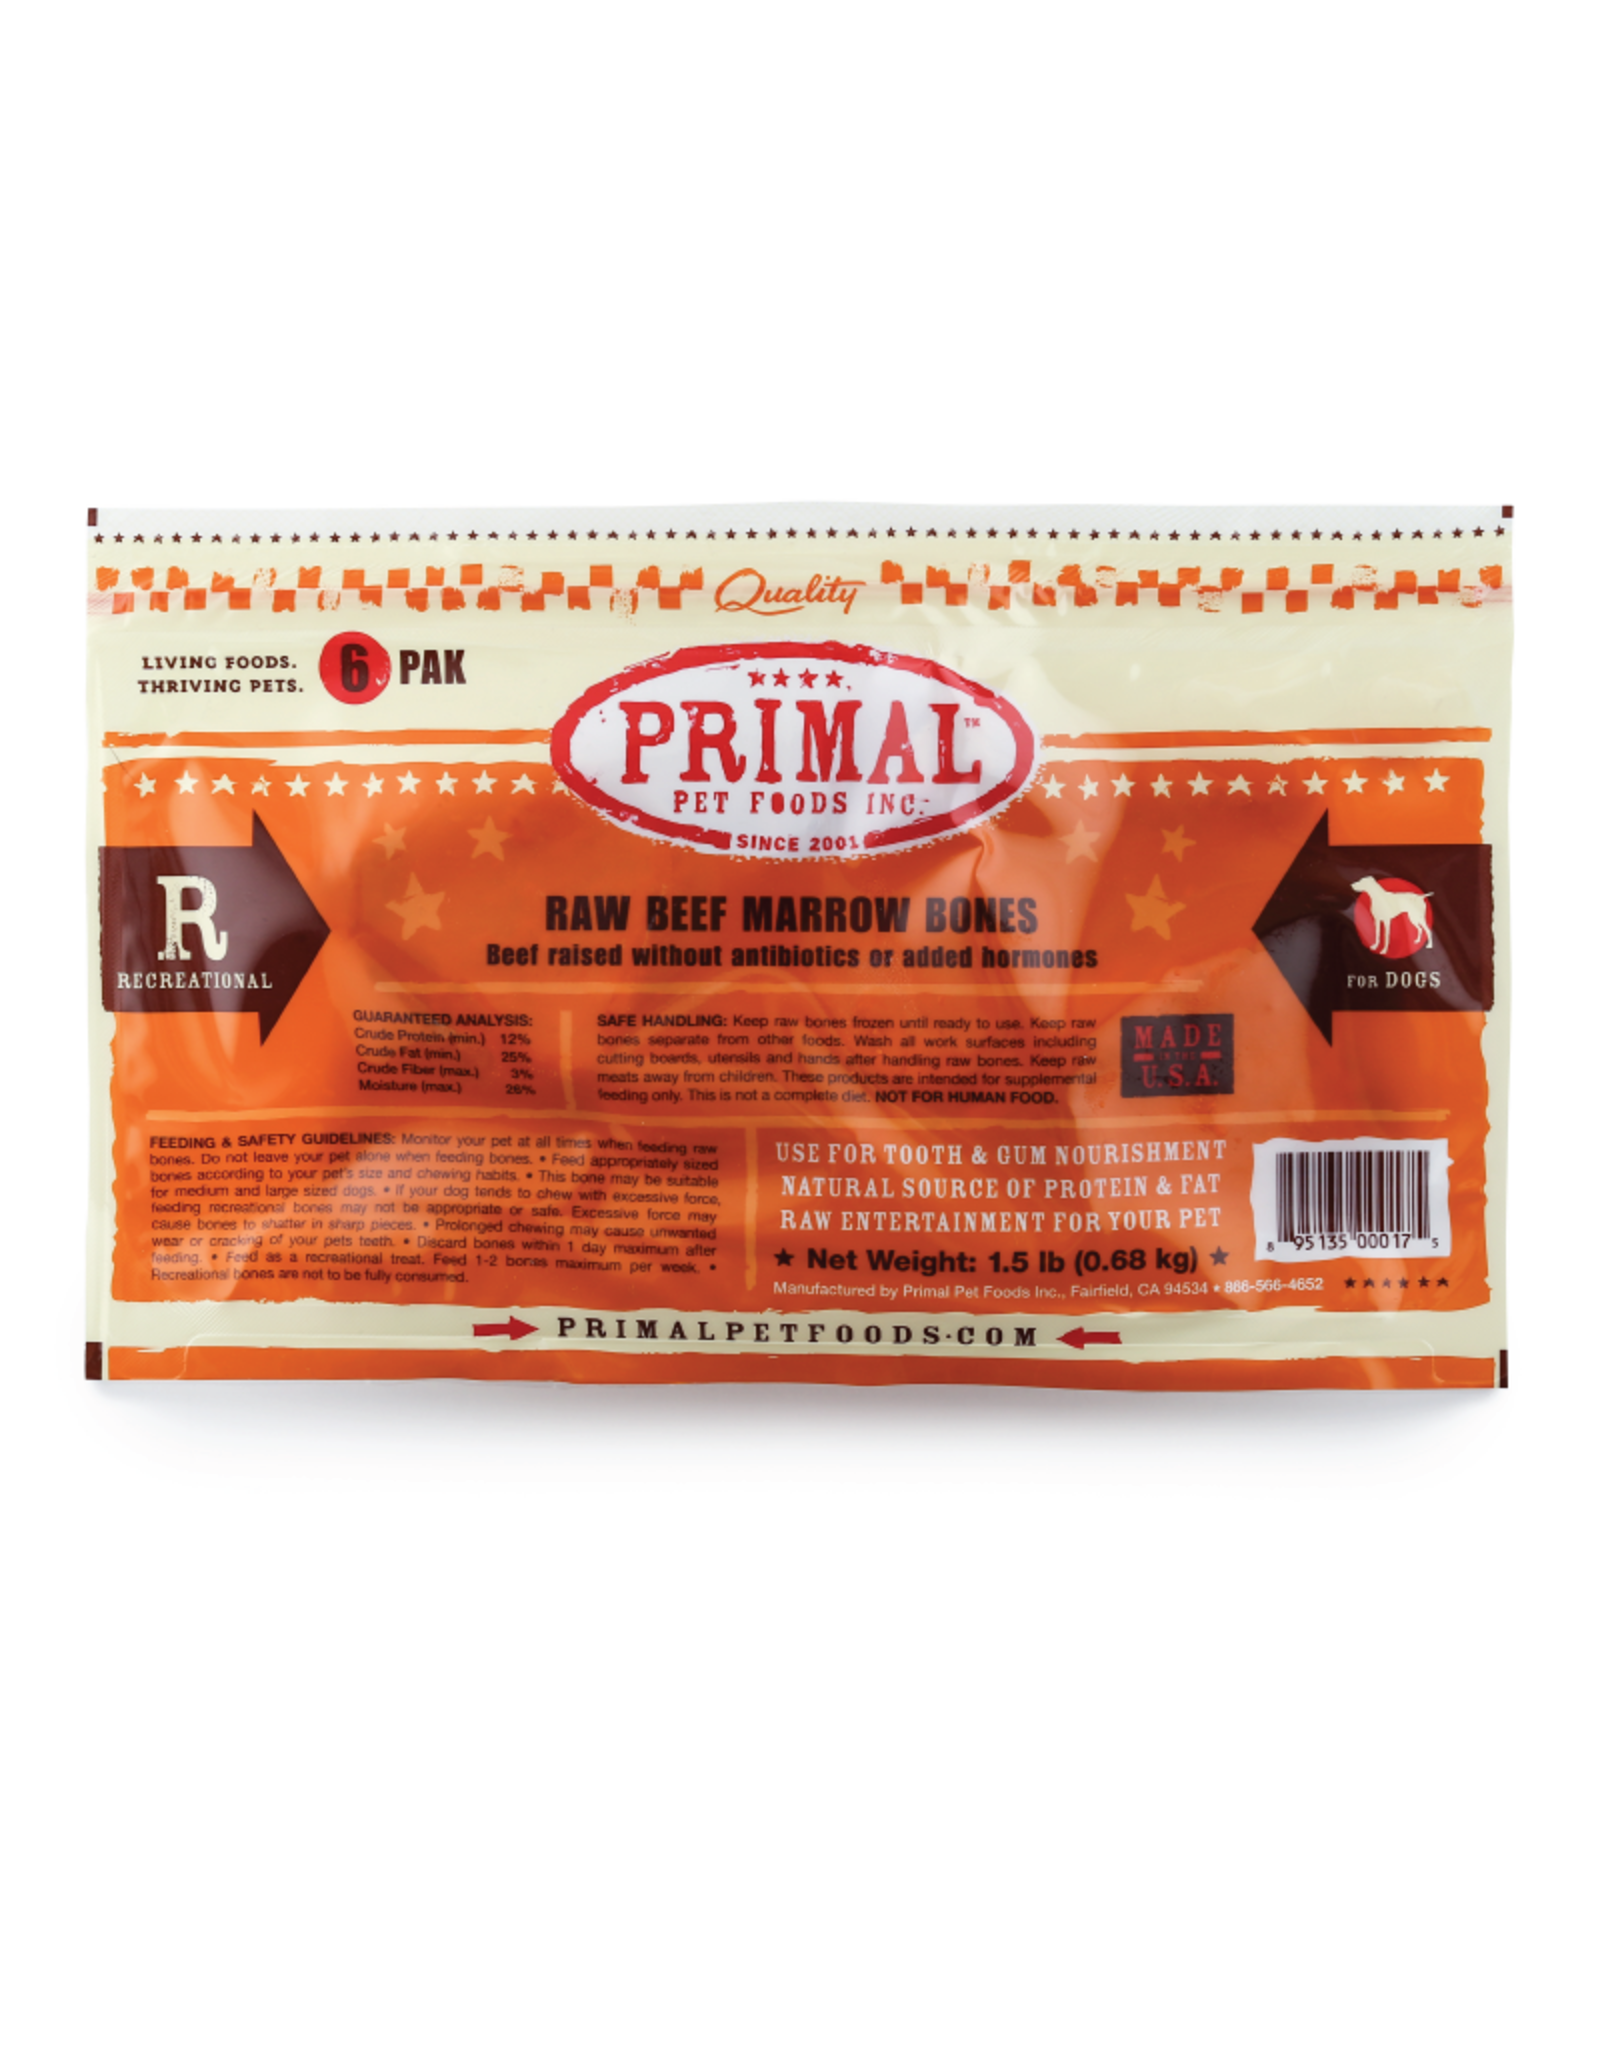 PRIMAL PET FOODS Primal | Dog Frozen Bone Beef Marrow